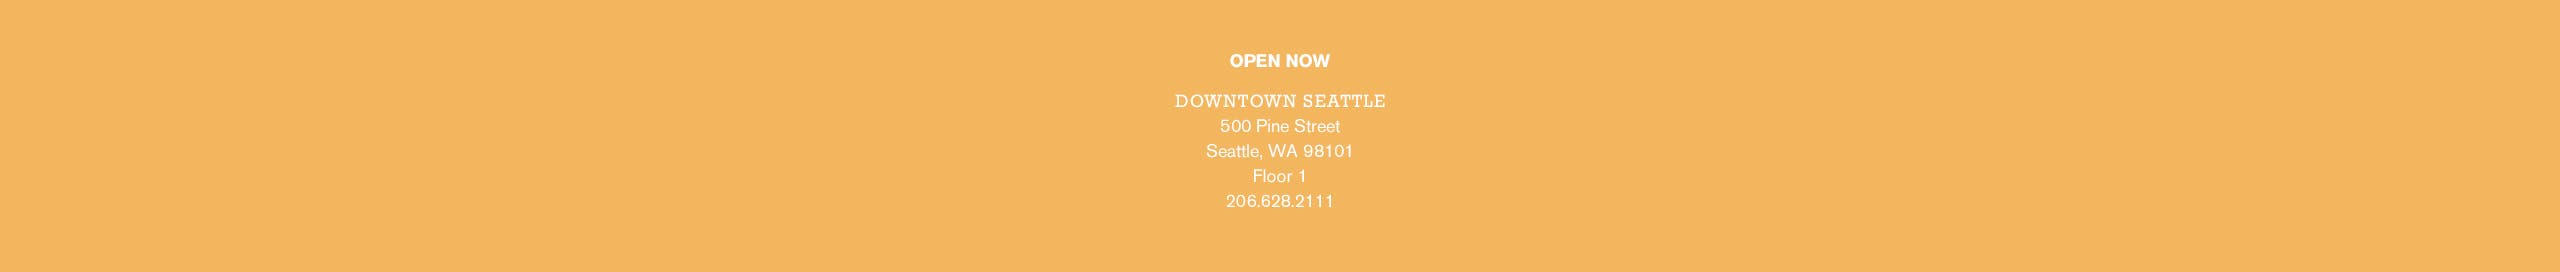 The Nordstrom Welcomes Hermès shop is open now at our Downtown Seattle store, on floor 1.